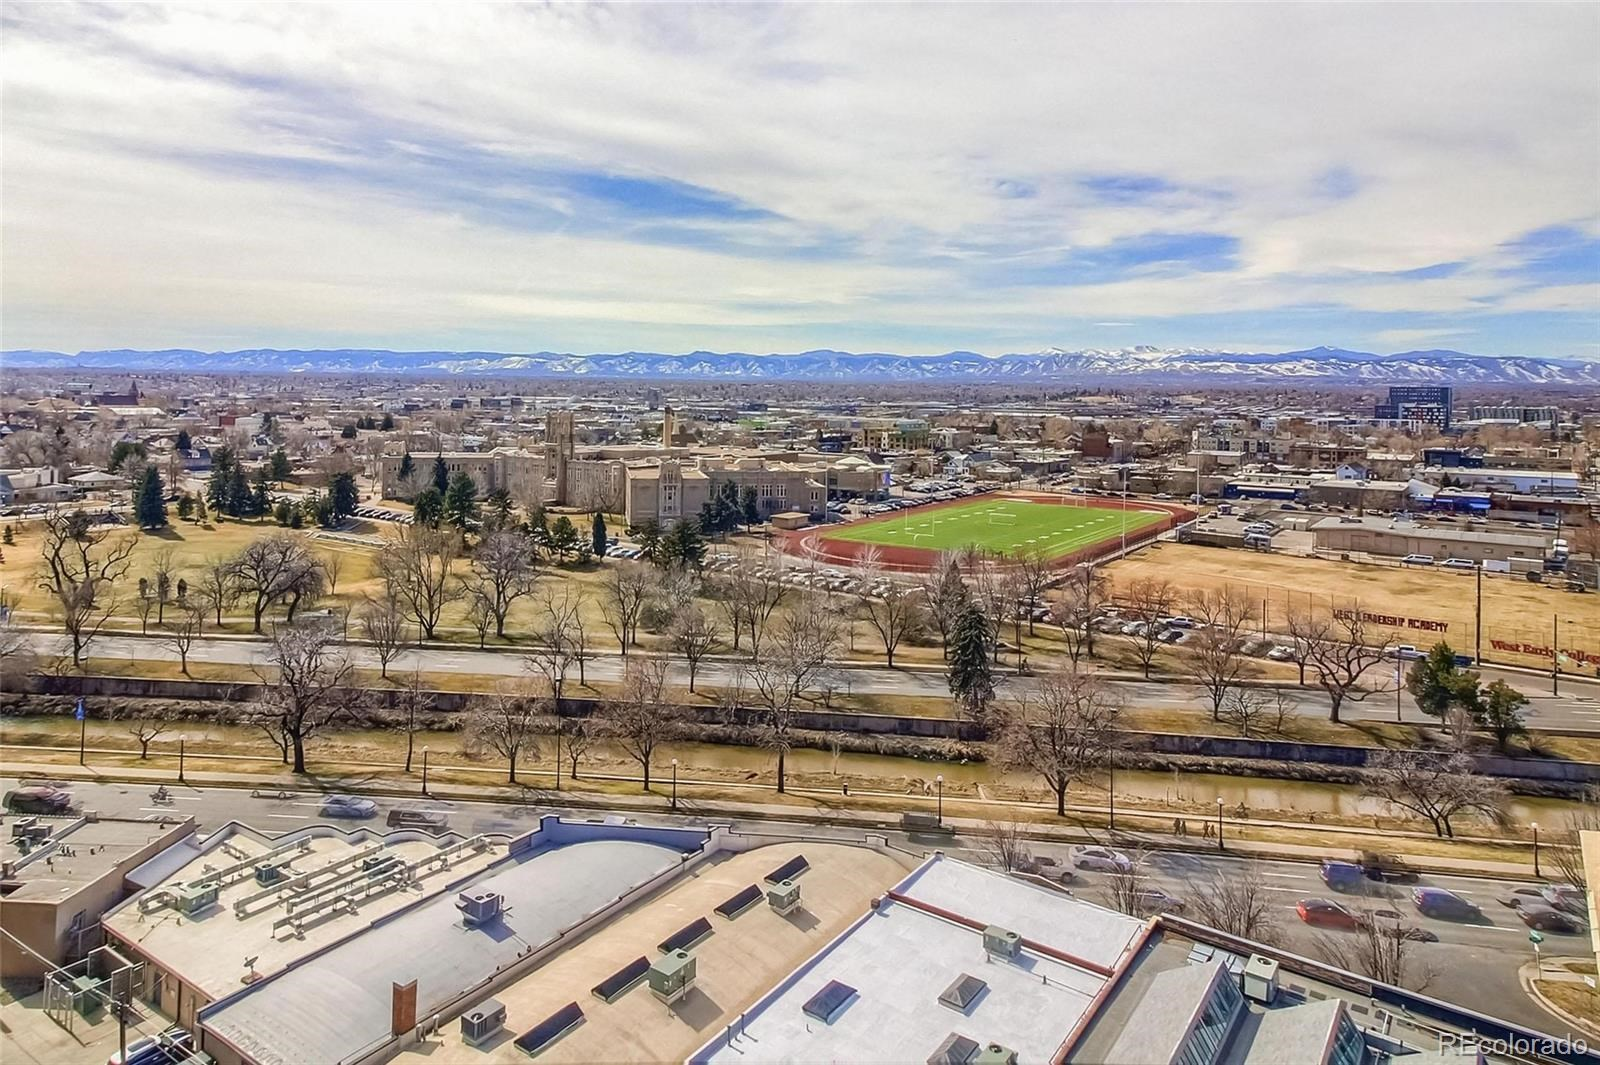 MLS# 2032865 - 2 - 300 W 11th Avenue #14C, Denver, CO 80204